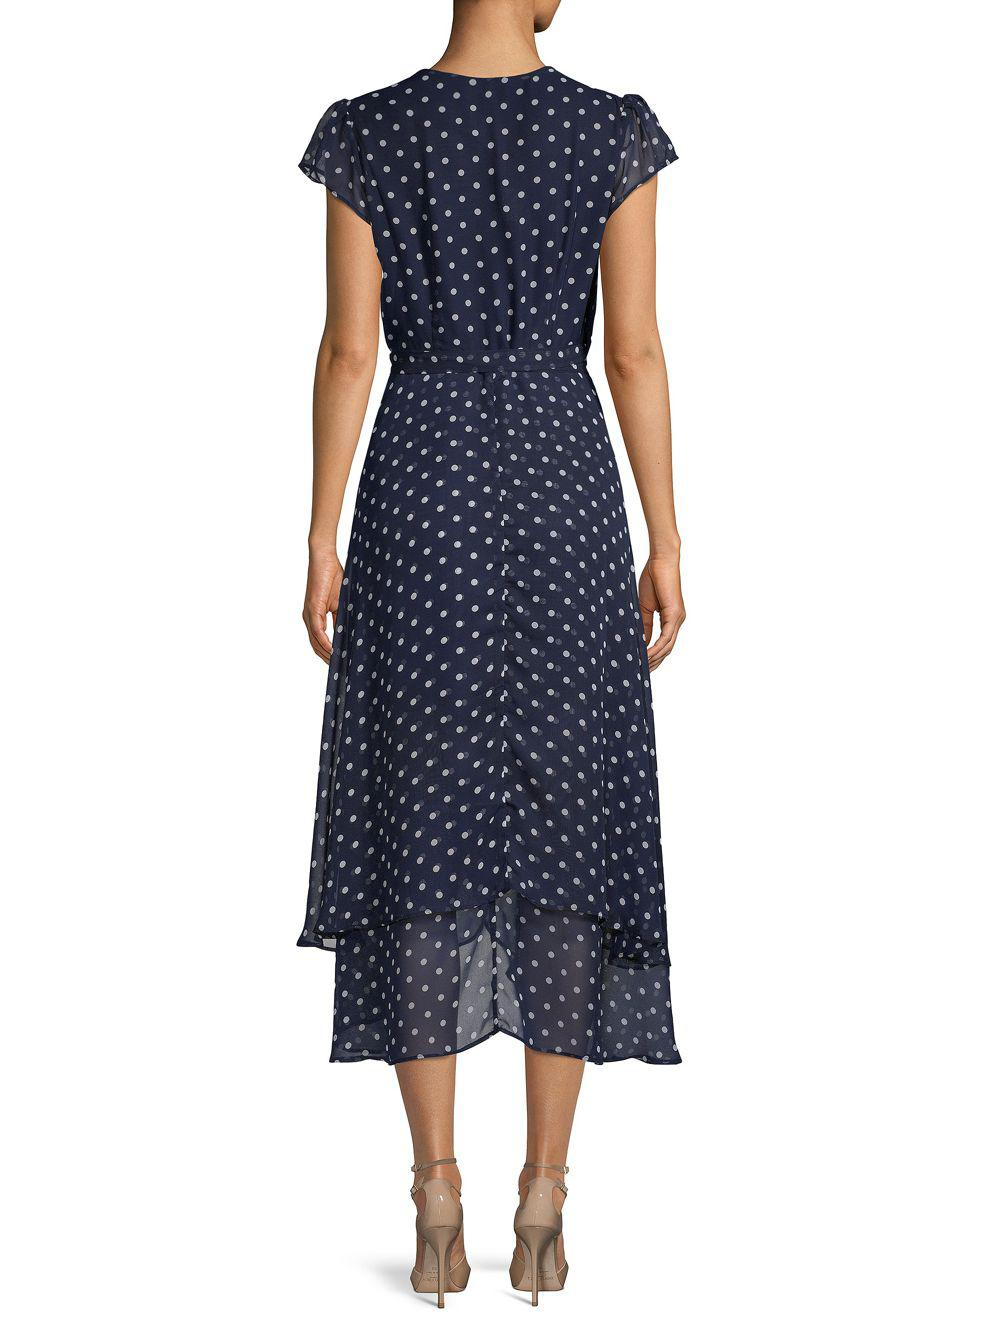 5426fbca2602 Gallery. Previously sold at: Saks OFF 5TH · Women's Midi Dresses Women's Polka  Dot Dresses